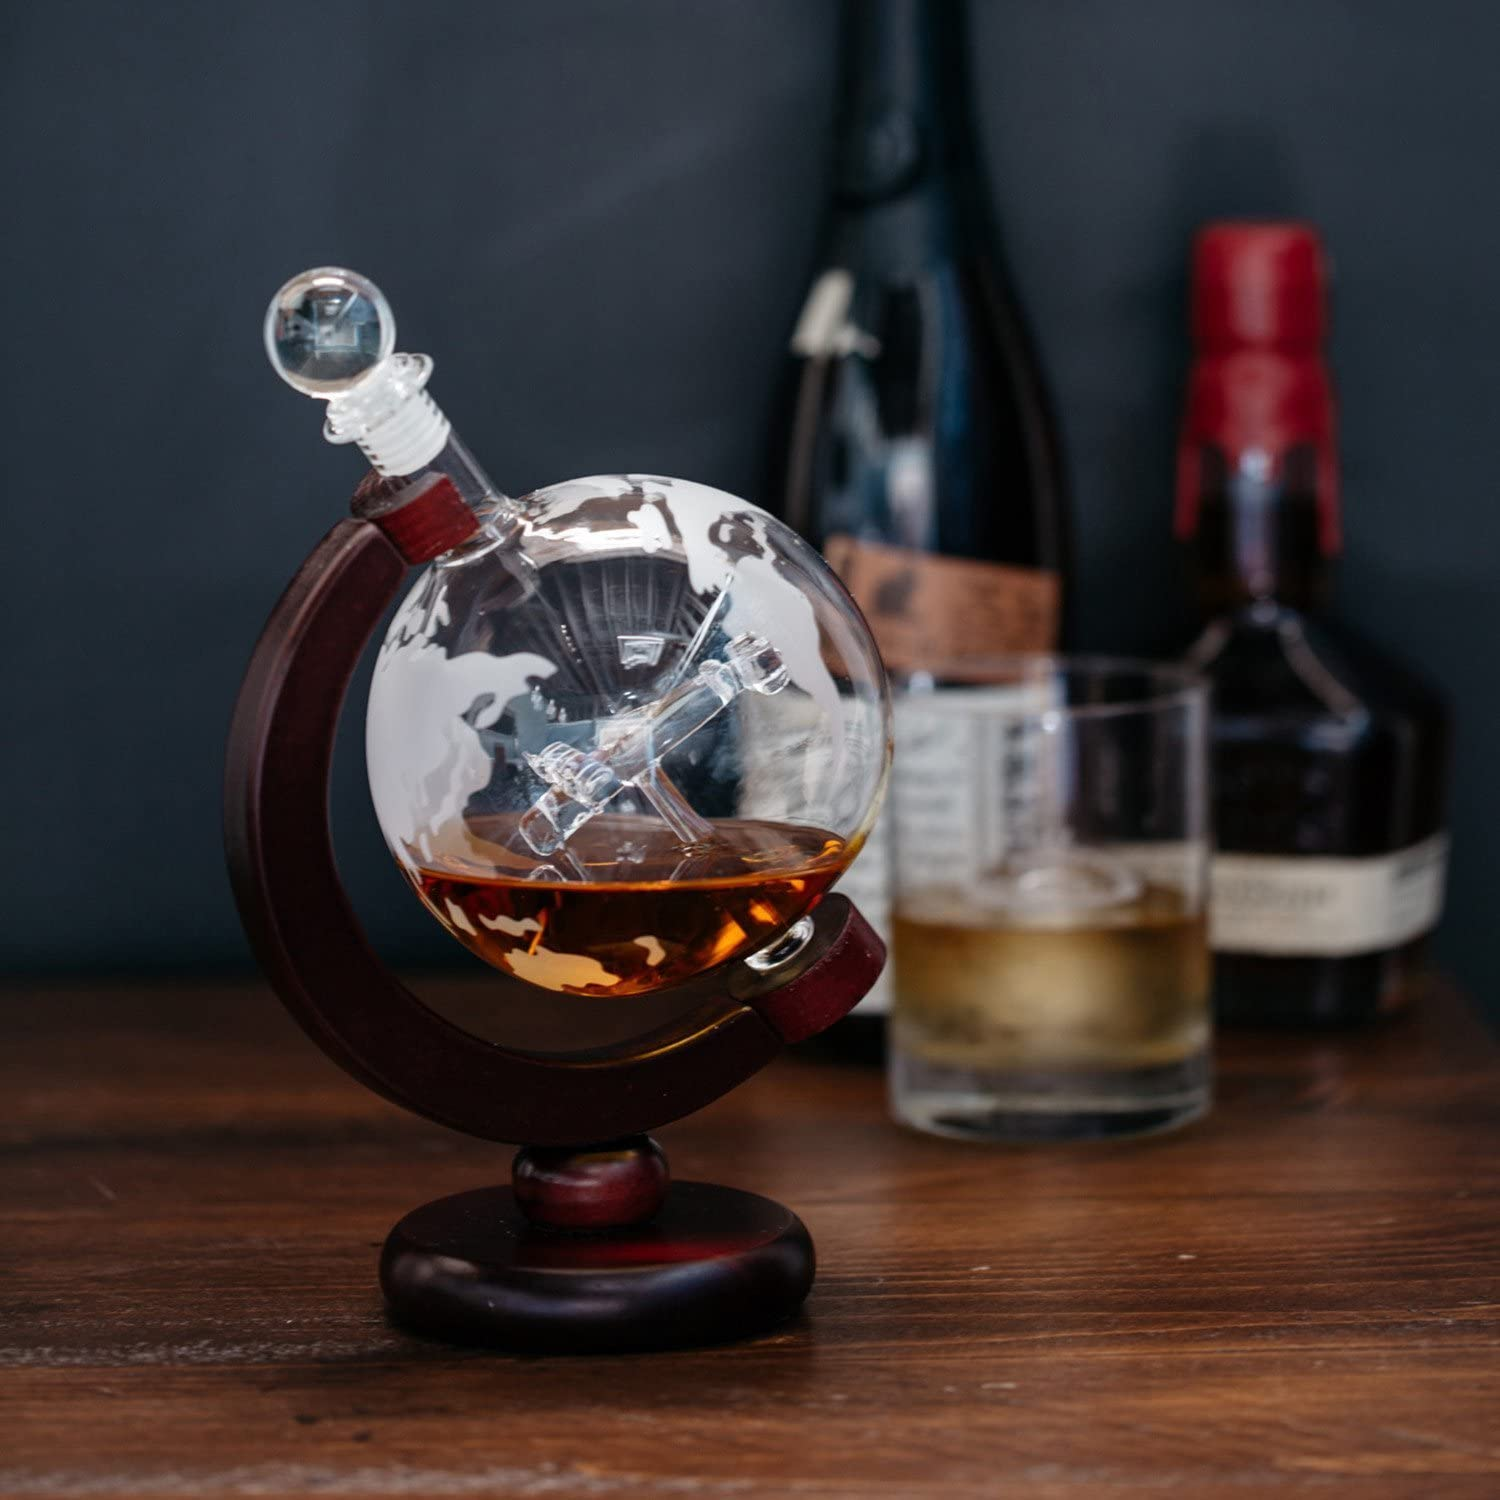 Amazon Com Large 50 Oz Handmade Vodka Or Liquor Etched Globe Decanter Set With Wooden Stand And Bar Funnel Wood Stand Plane Liquor Decanters